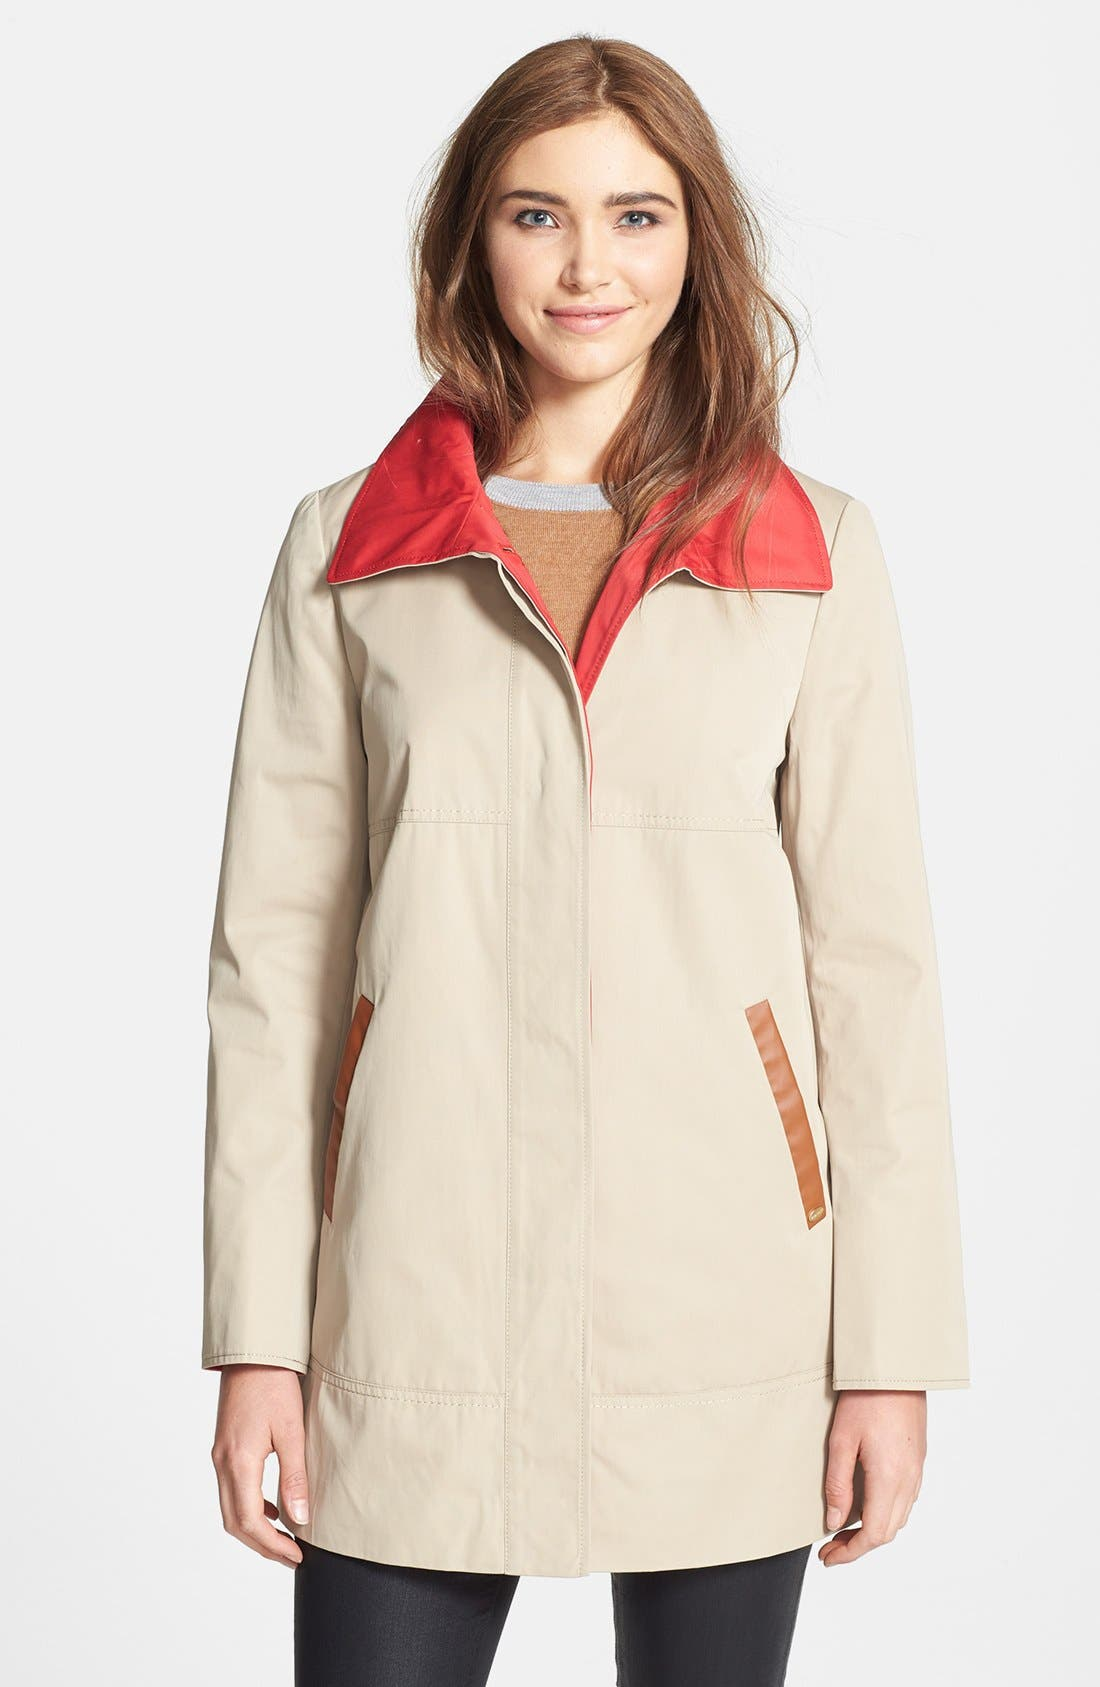 Alternate Image 1 Selected - Ellen Tracy Contrast Lined A-Line Raincoat (Online Only)